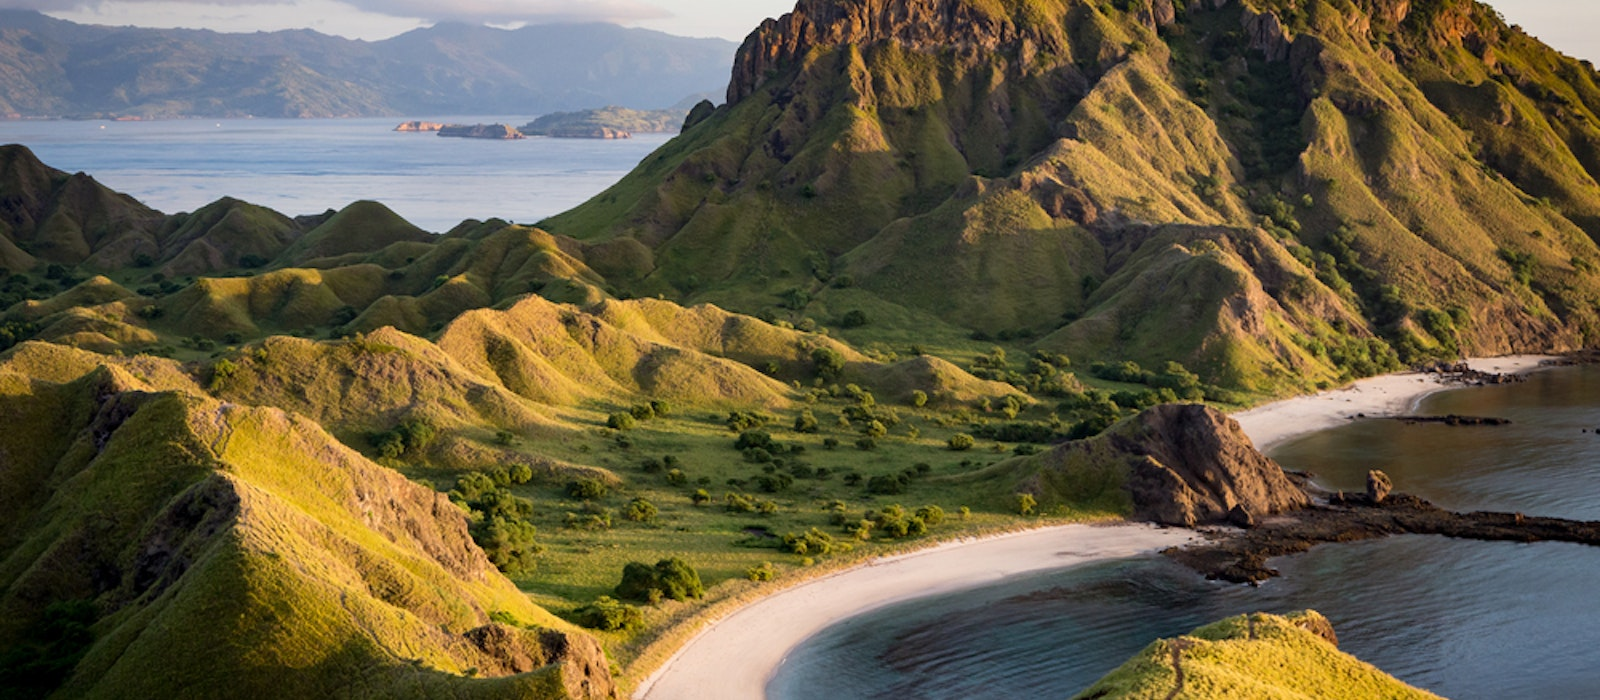 Padar Island is one of the islands within the Komodo archipelago.